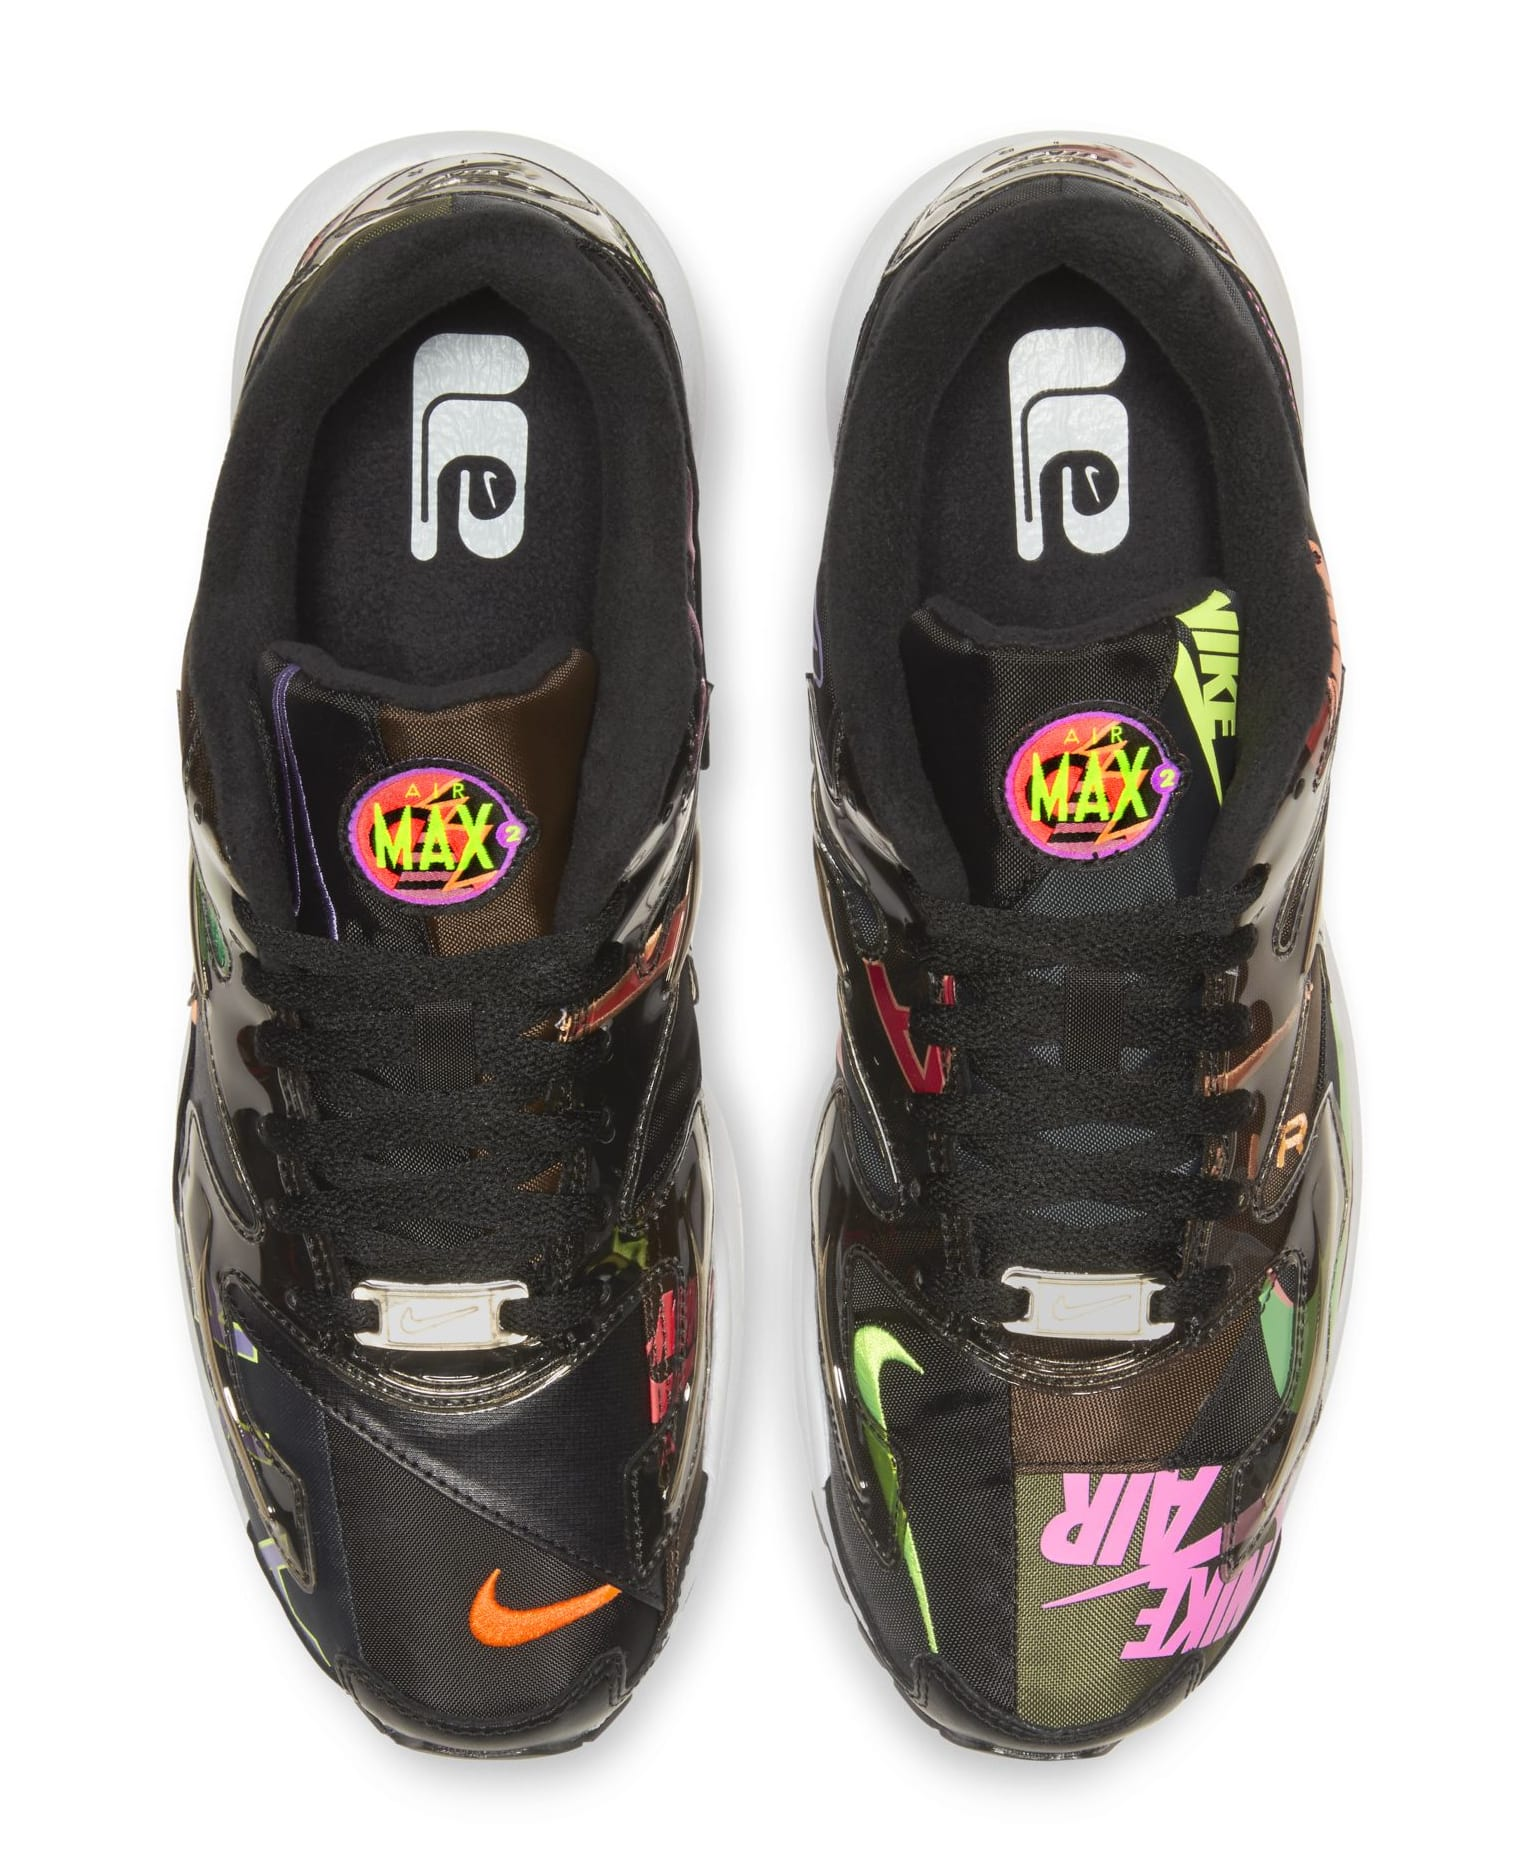 Atmos x Nike Air Max2 Light Black Top